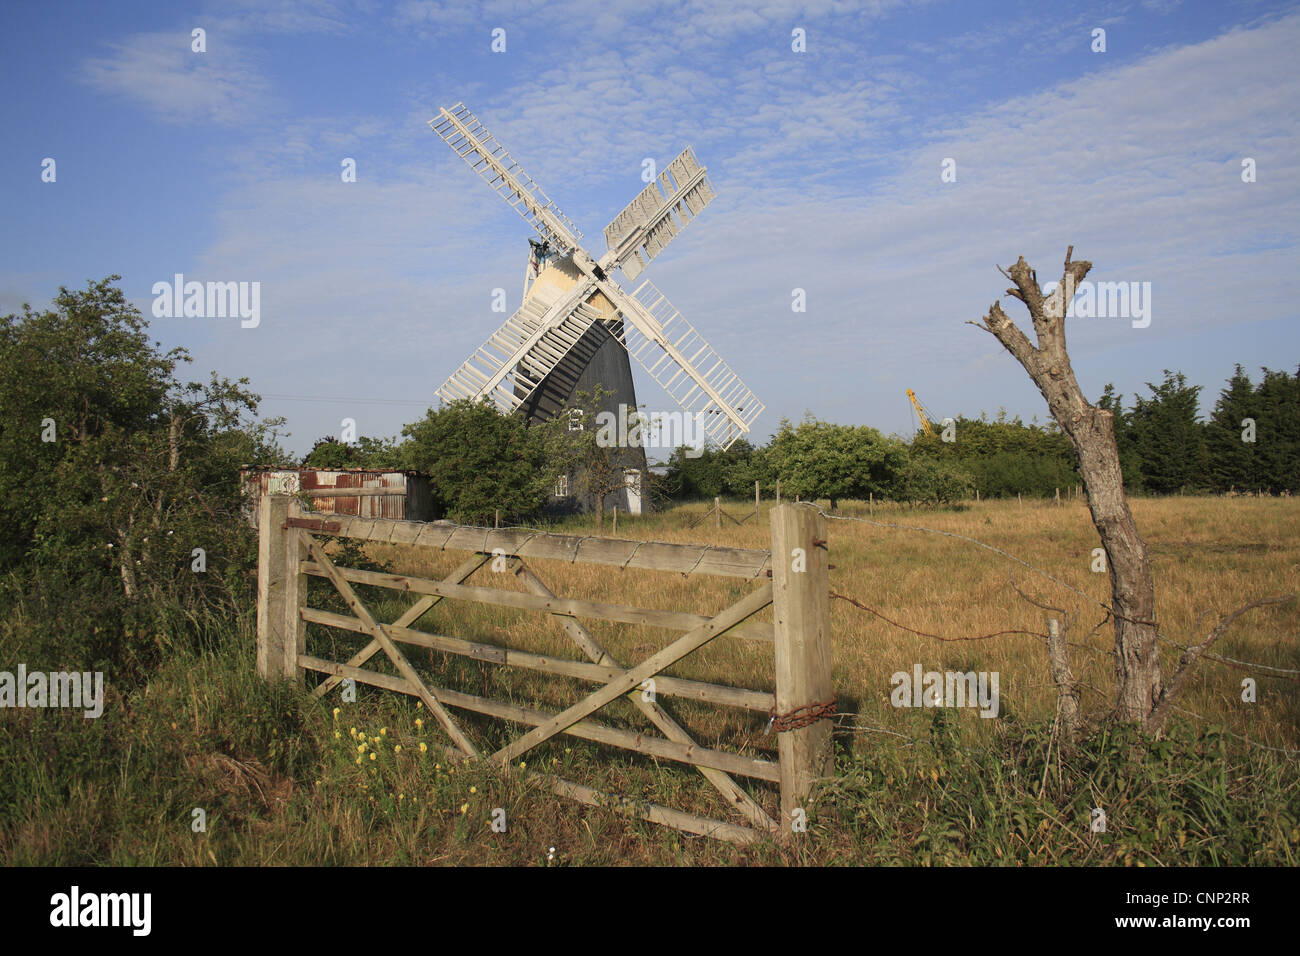 Nineteenth Century tower mill, Thelnetham Windmill, Thelnetham, Little Ouse Valley, Suffolk, England, june - Stock Image